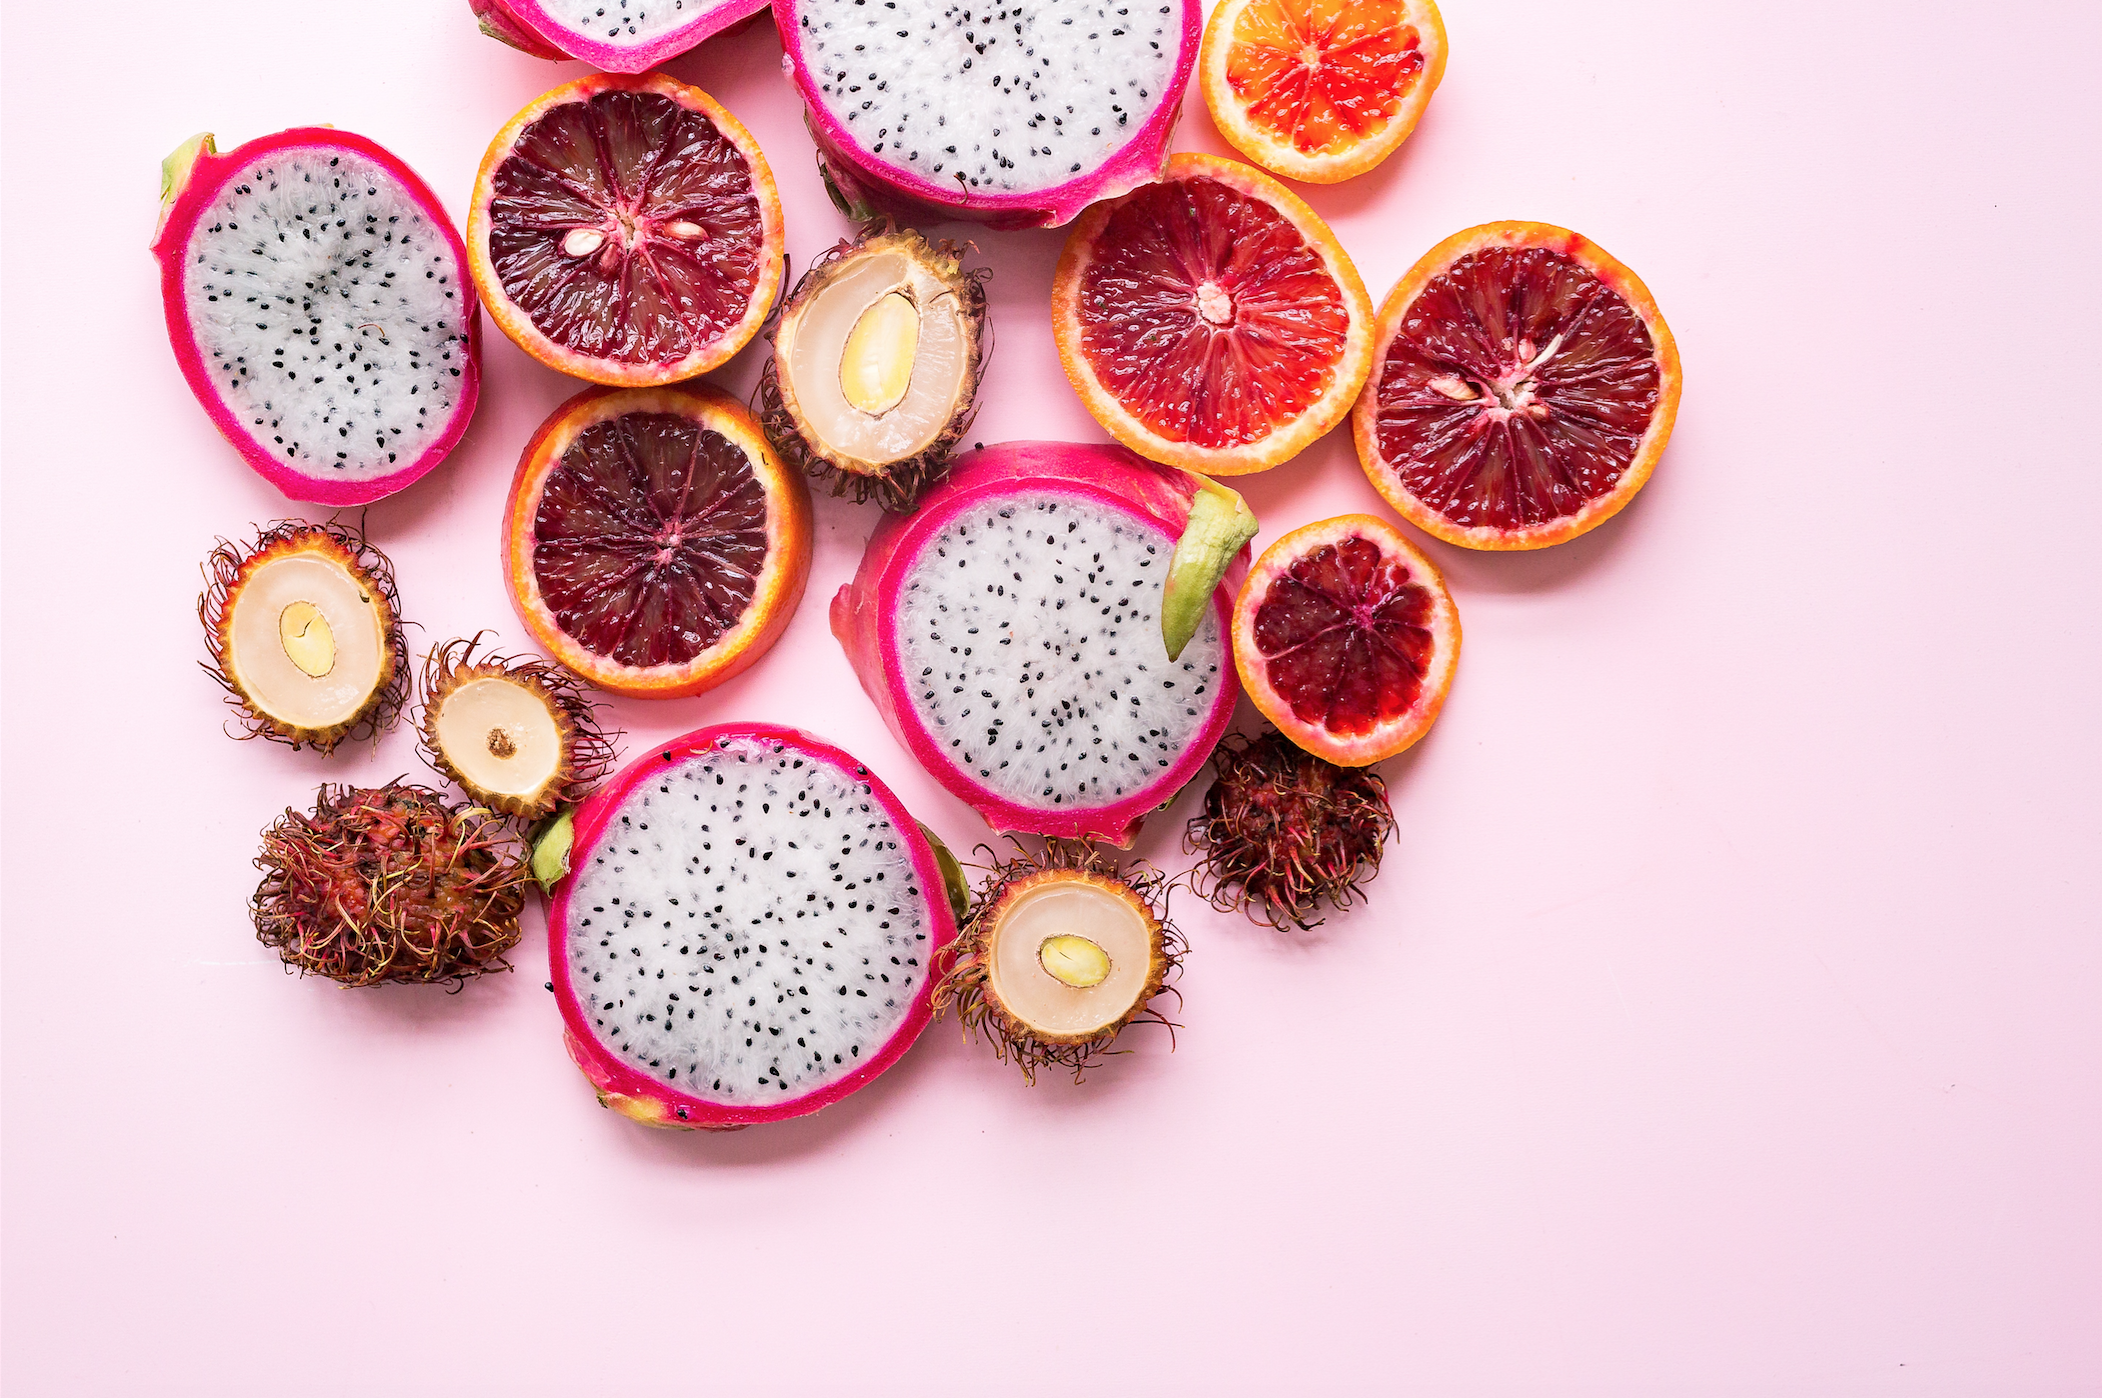 SKIN SERIES | The Ins and Outs of Vitamin C